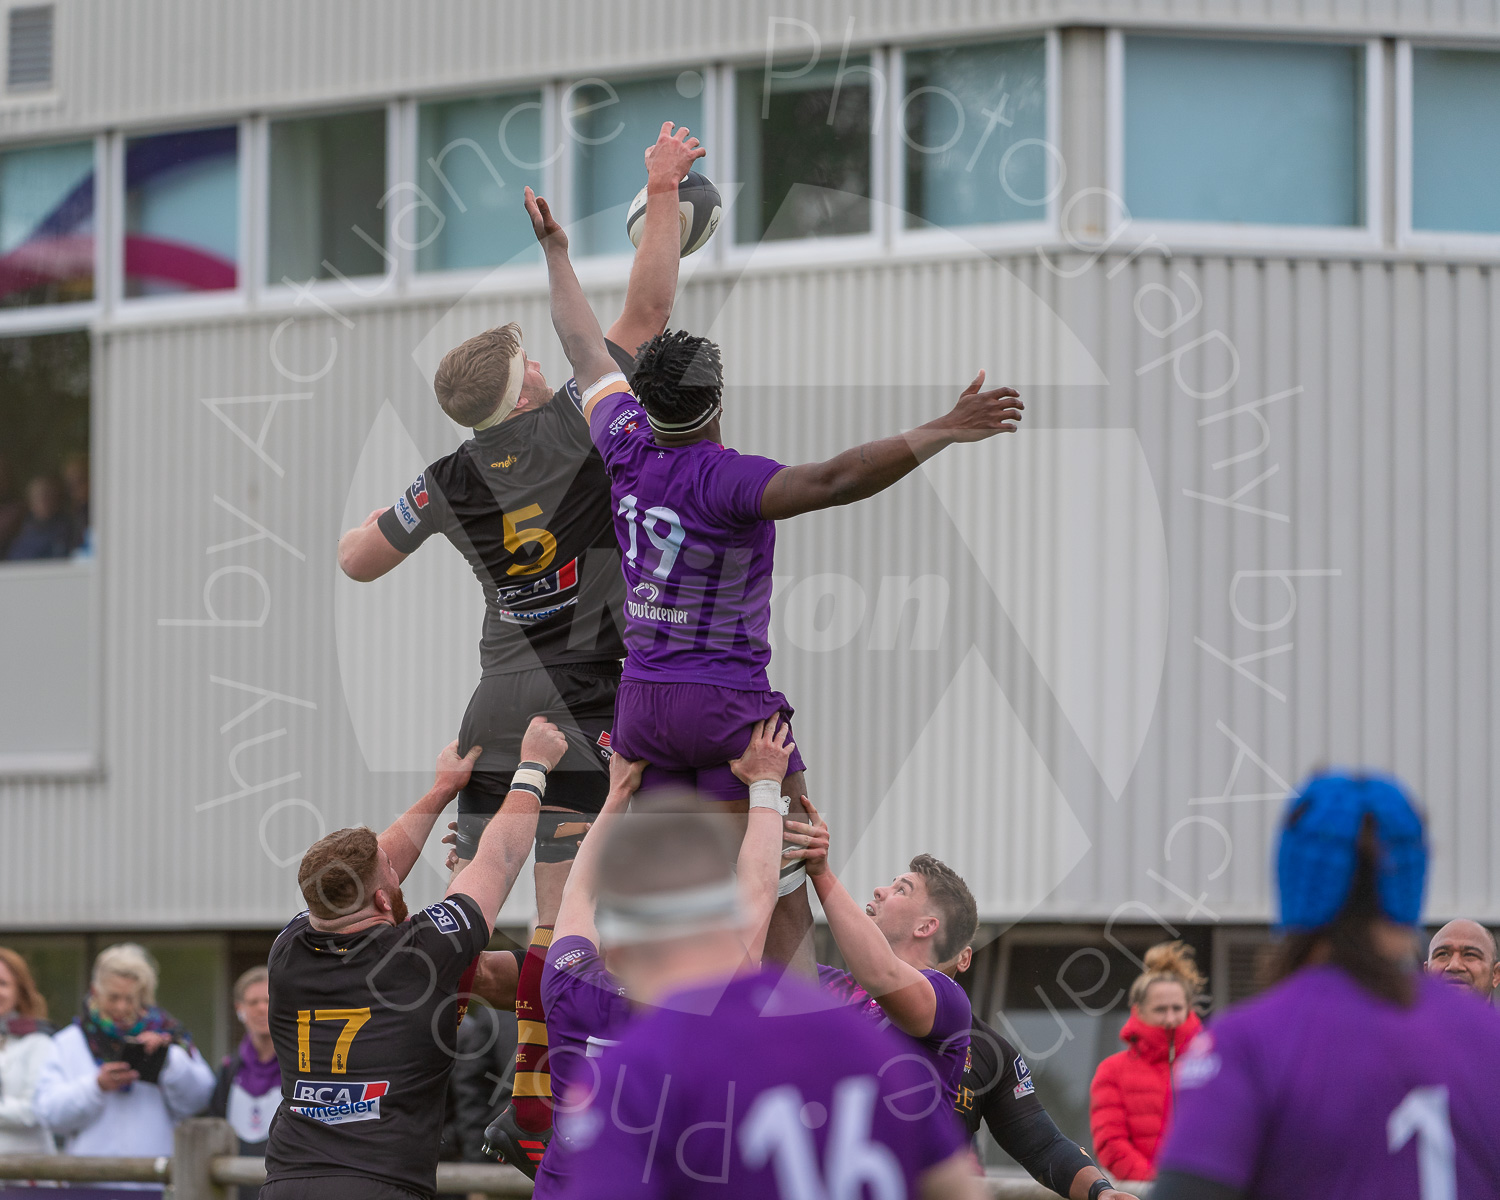 20190427 Loughborough vs Ampthill 1st XV #6604